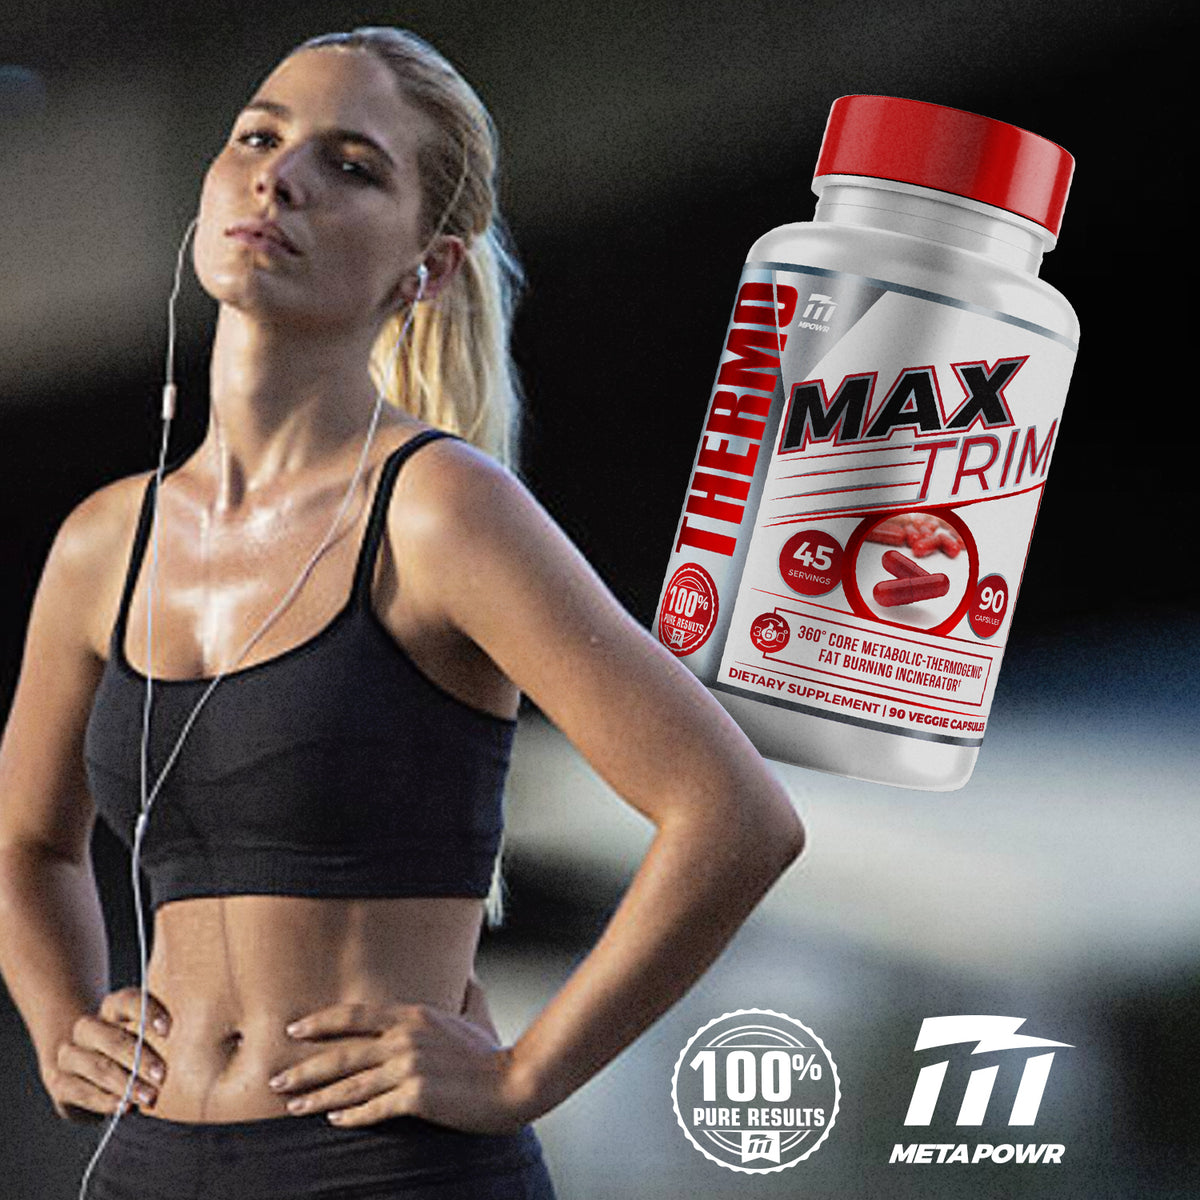 MAXTRIM THERMO BURN® THERMOGENIC FAT BURNER INCINERATOR 45 DAY SUPPLY - META POWR SPORTS®